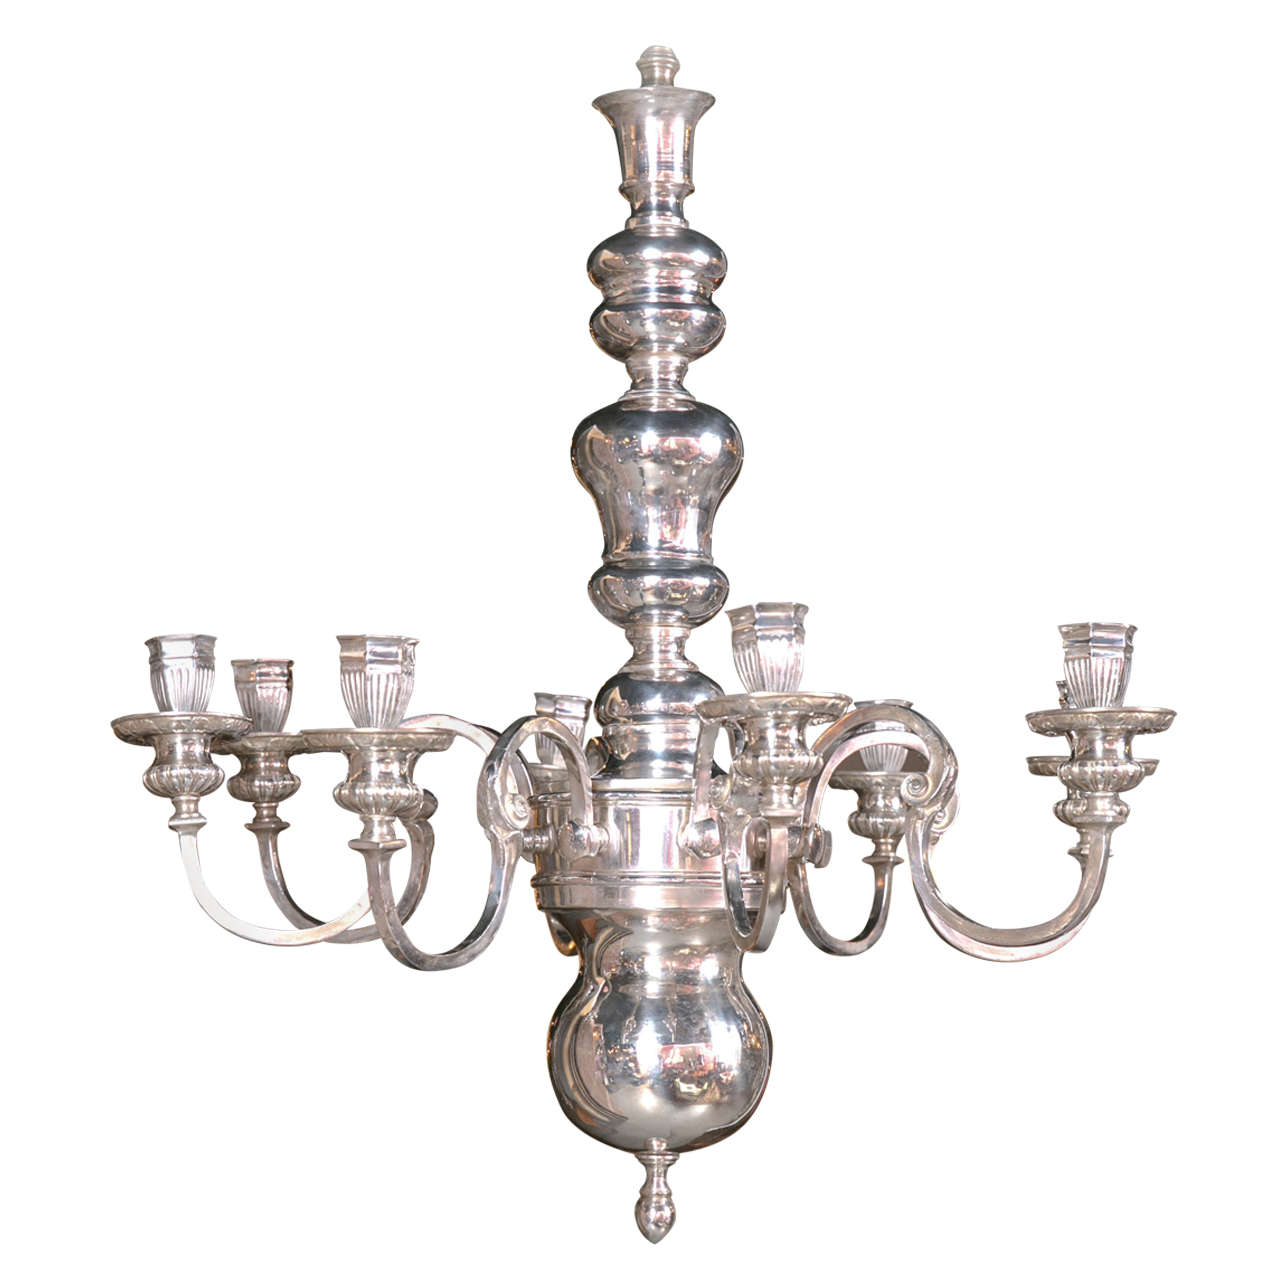 Caldwell Silver Plated, Eight-Light Chandelier